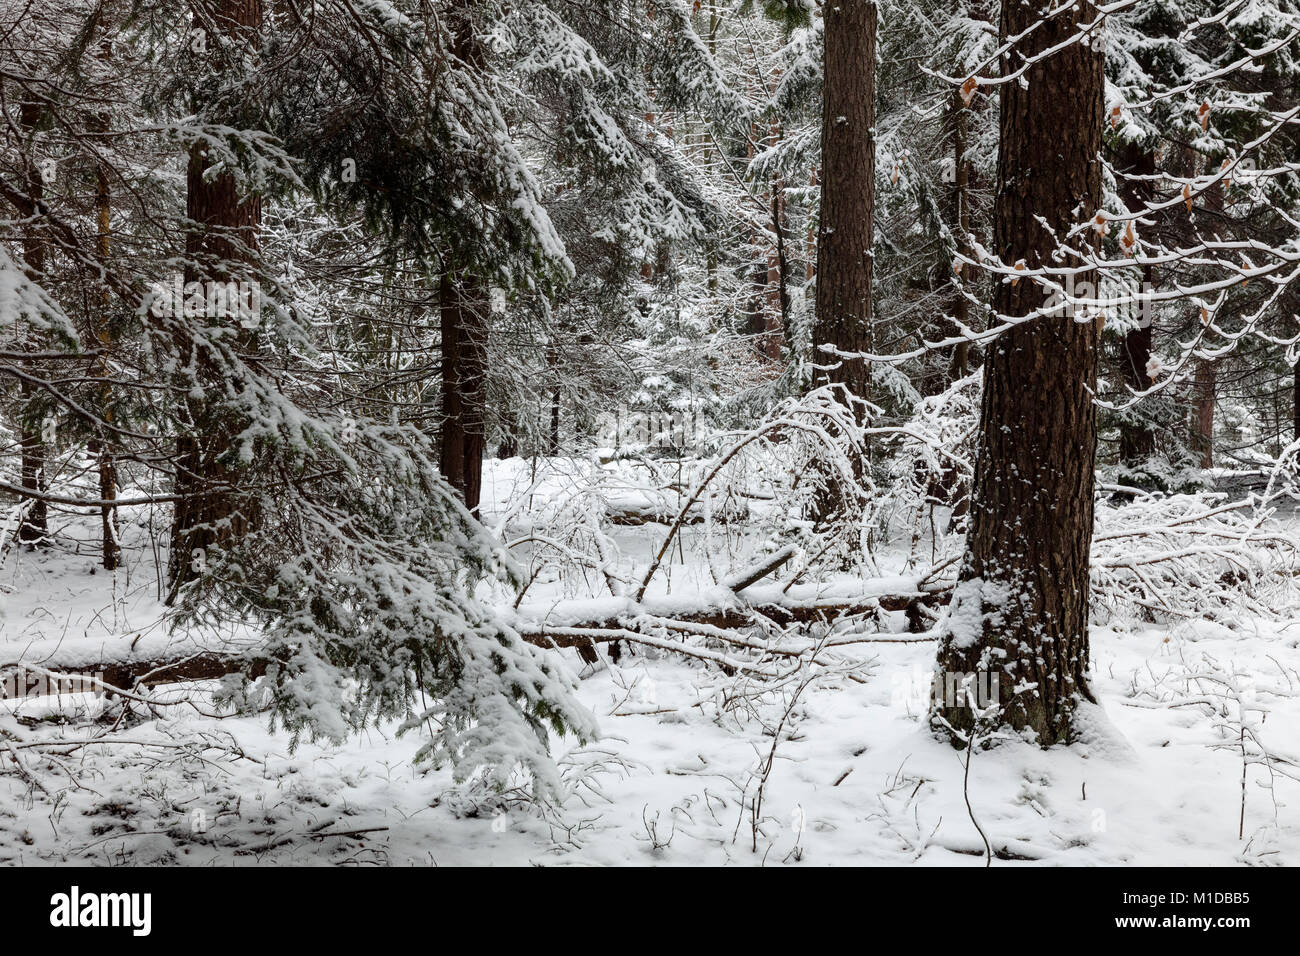 The Borecka Forest, Poland - Stock Image